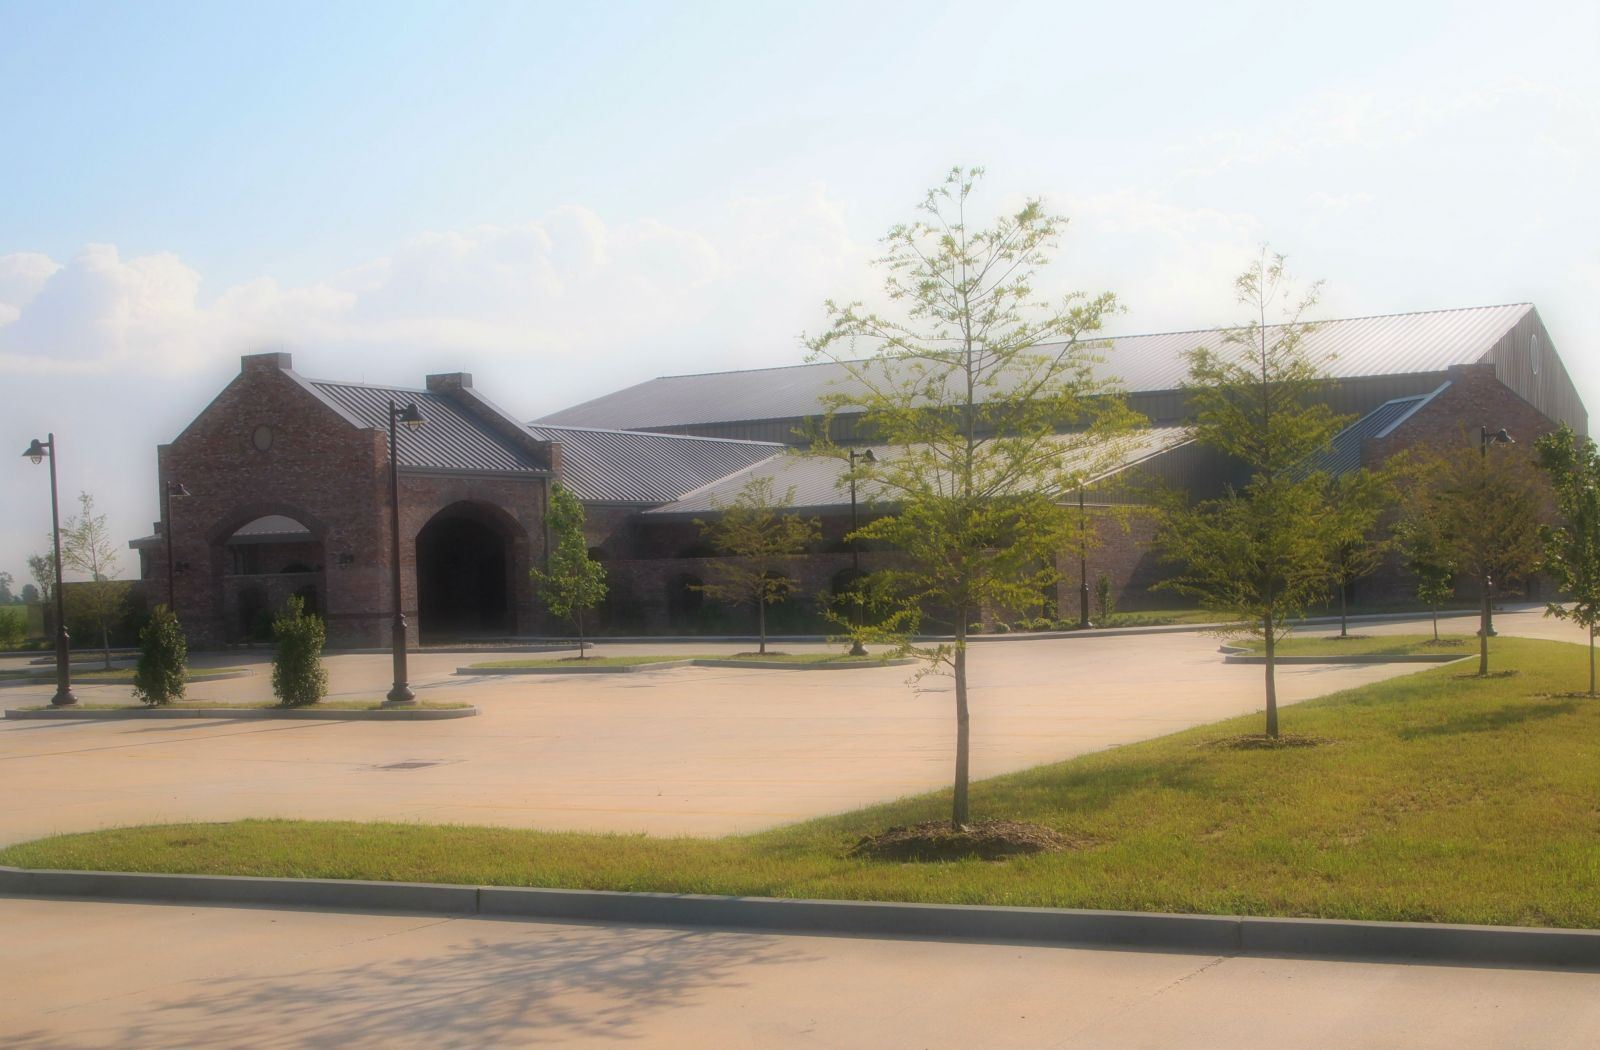 Assumption Parish Community Center Front